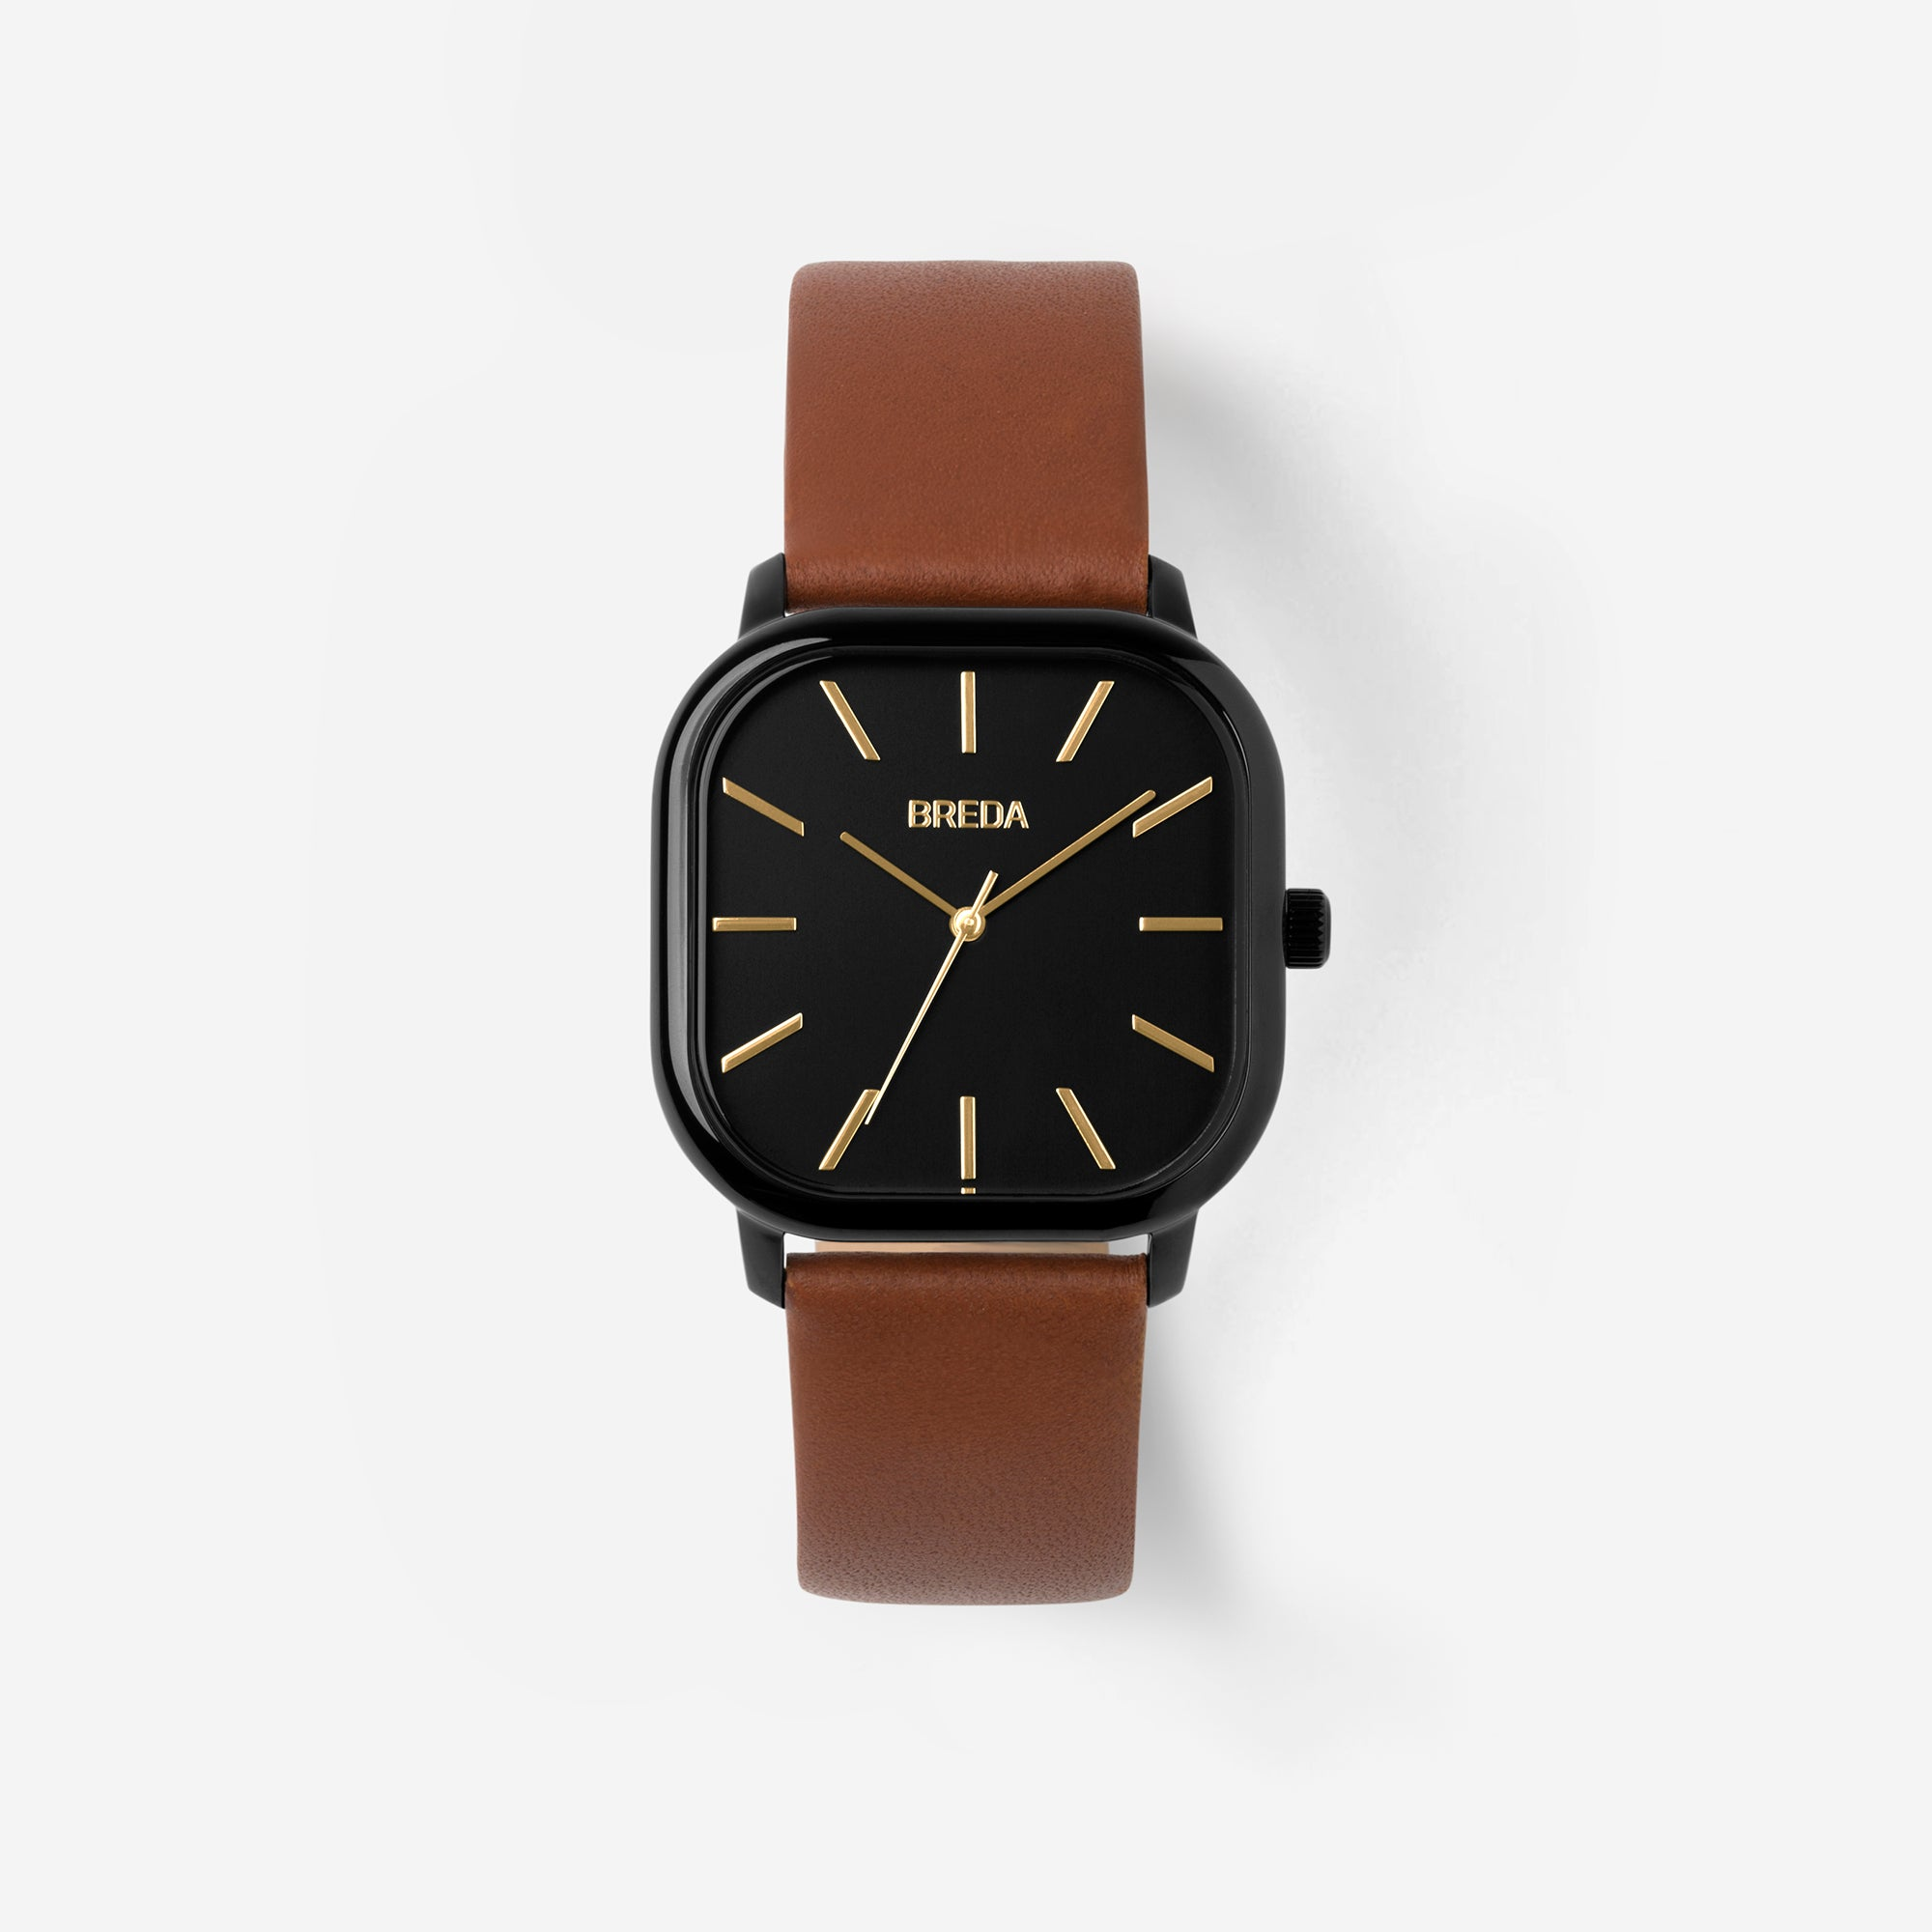 //cdn.shopify.com/s/files/1/0879/6650/products/breda-visser-1728g-black-brown-leather-watch-front_5d53e815-a77a-4a8c-ac39-d98e421b1051_1024x1024.jpg?v=1543254633